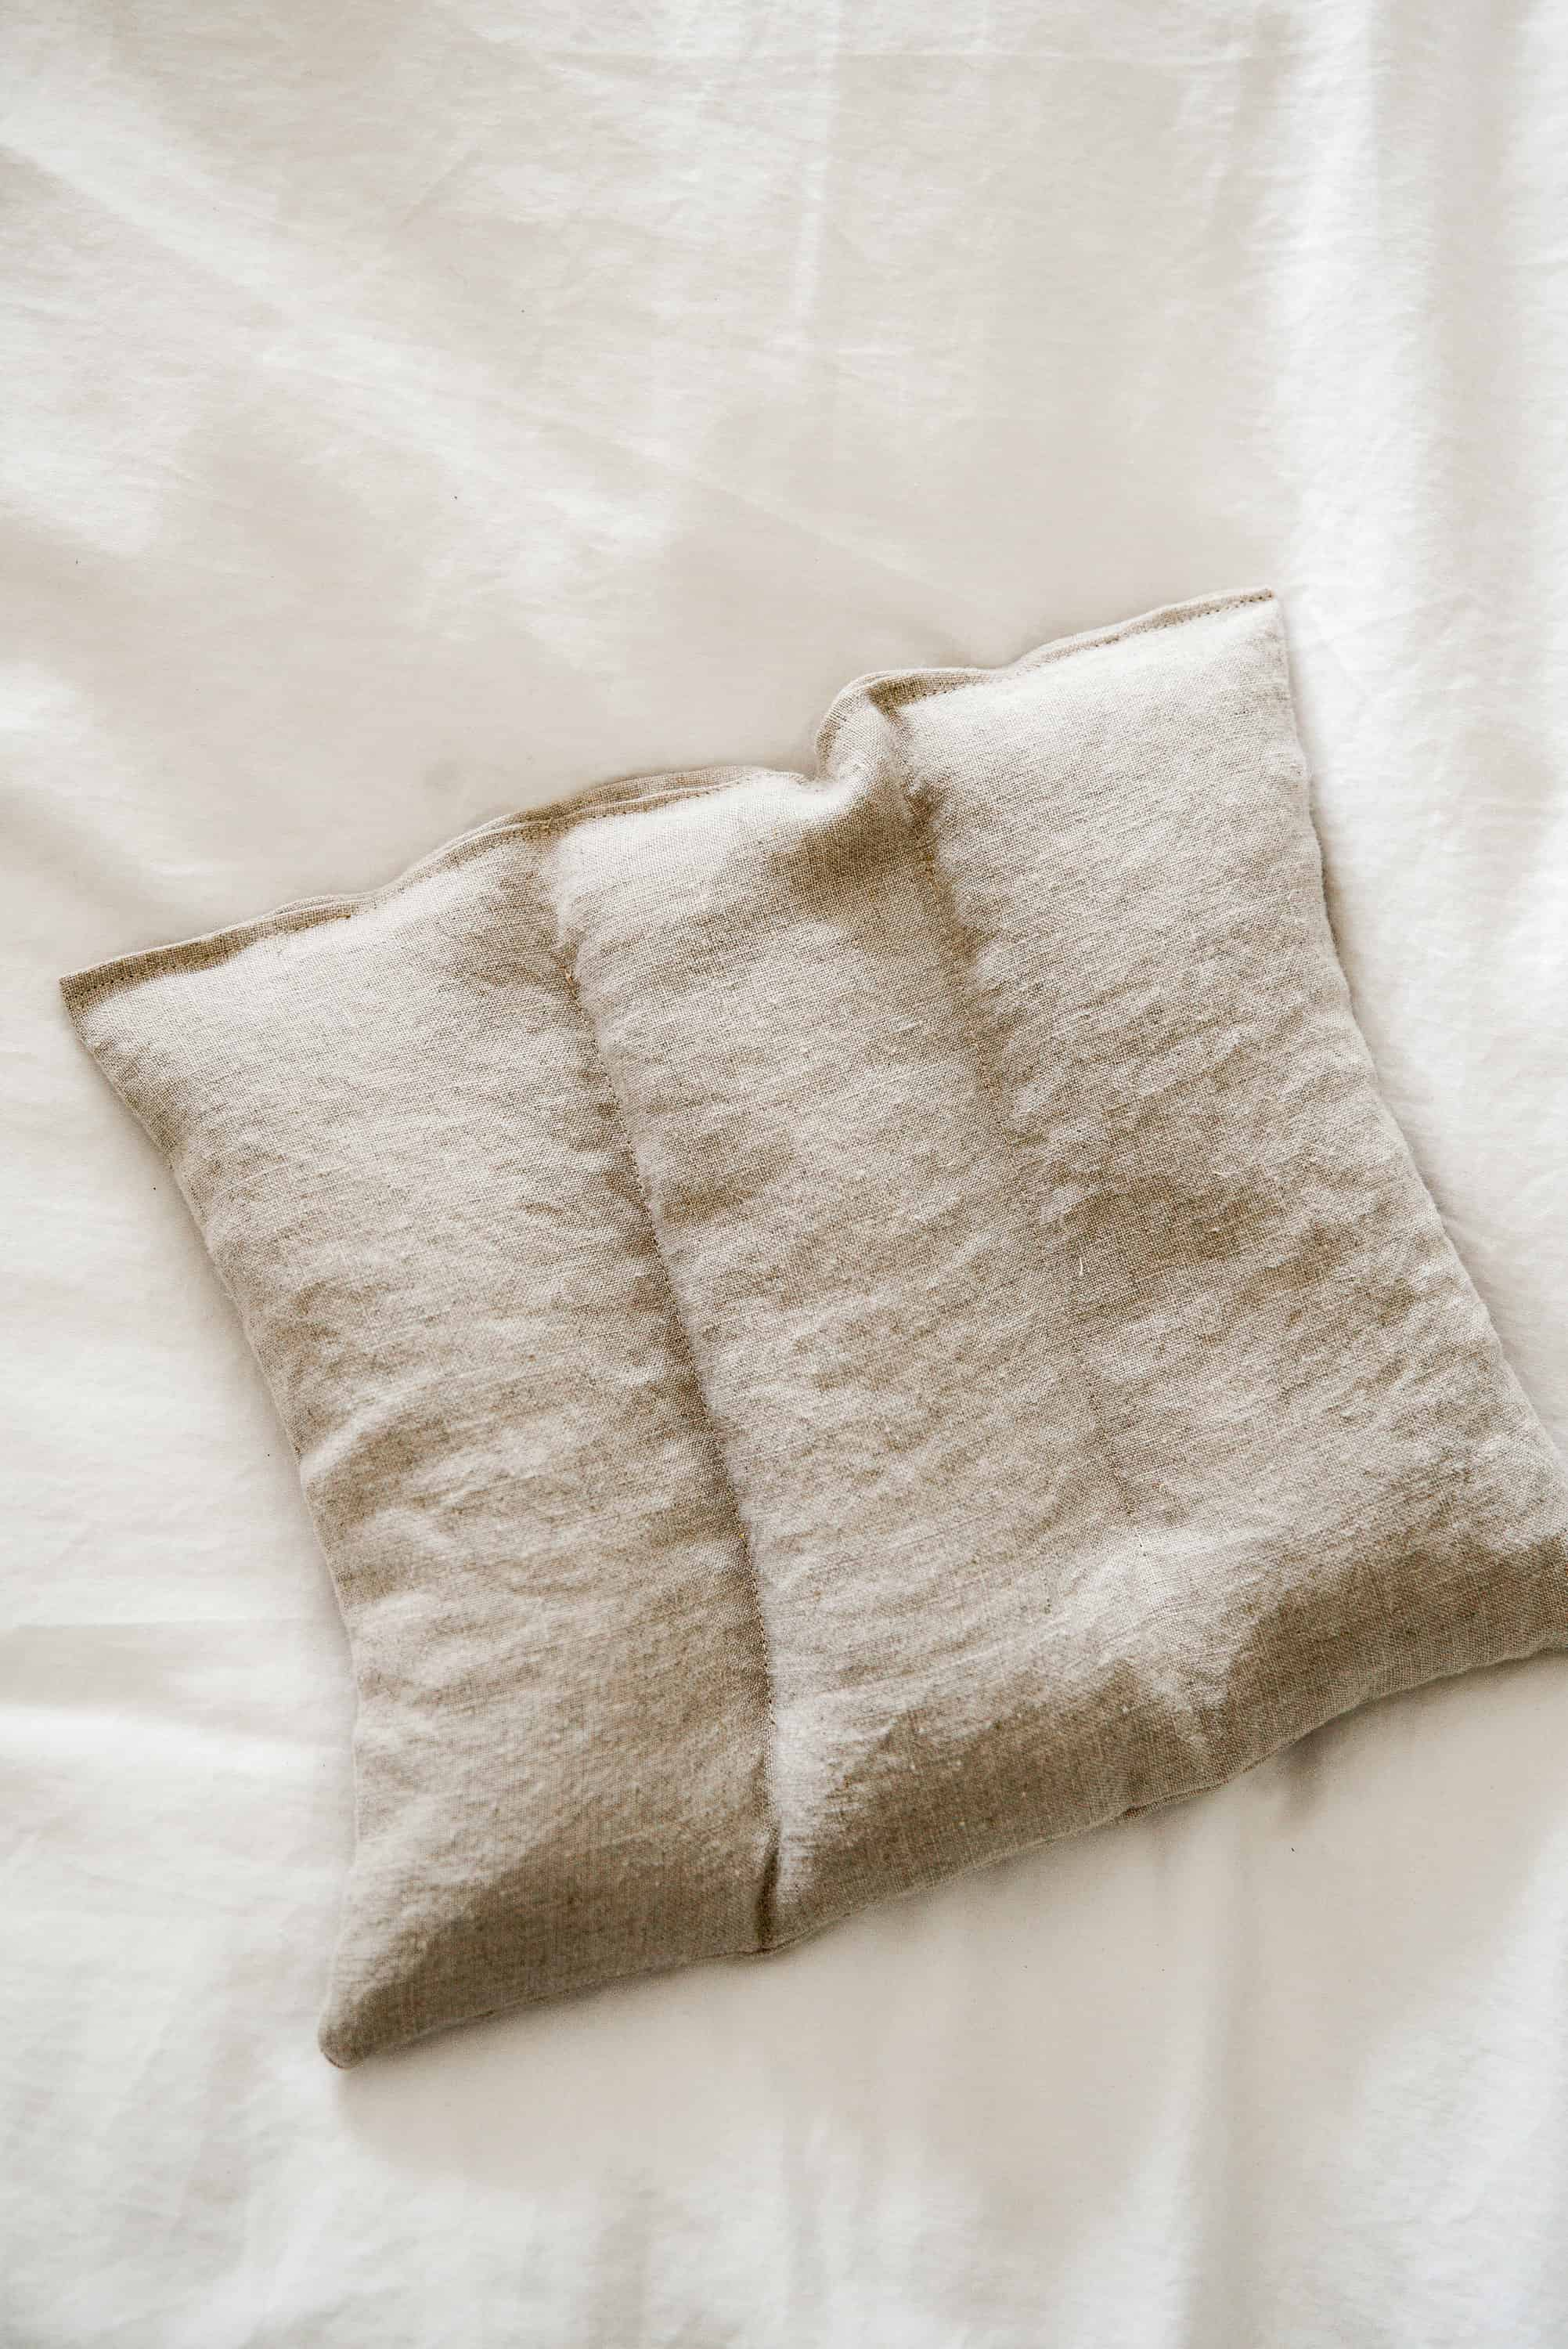 With just a little scrap fabric and some rice, you can make your own homemade rice heating pads in under 30 minutes! These pain relieving heating pads are filled with dried lavender and essential oil for the ultimate treat!